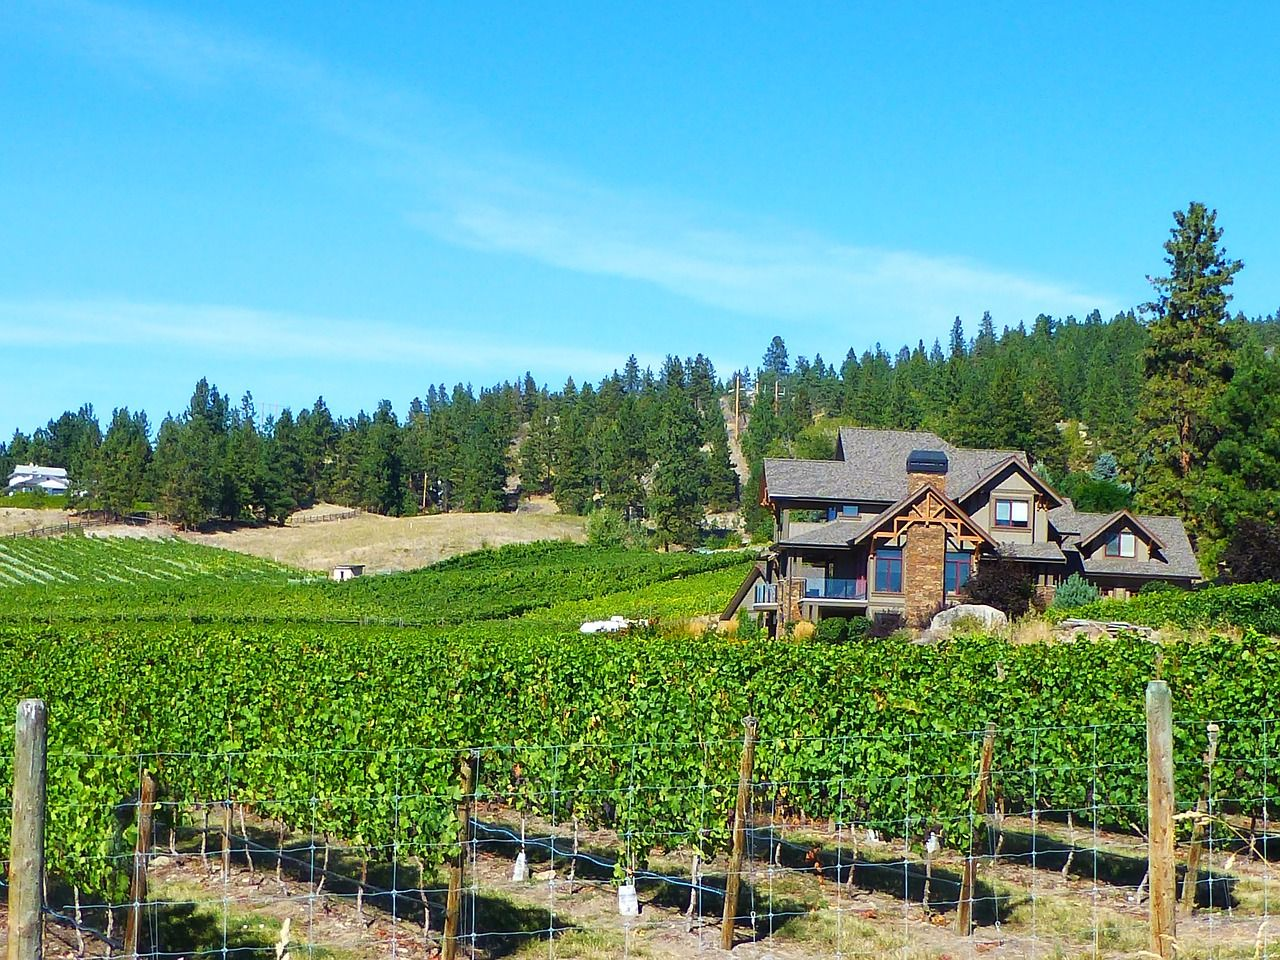 Okanagan wine tours on the Scenic Sip take guests past rolling vineyards in Lake Country.